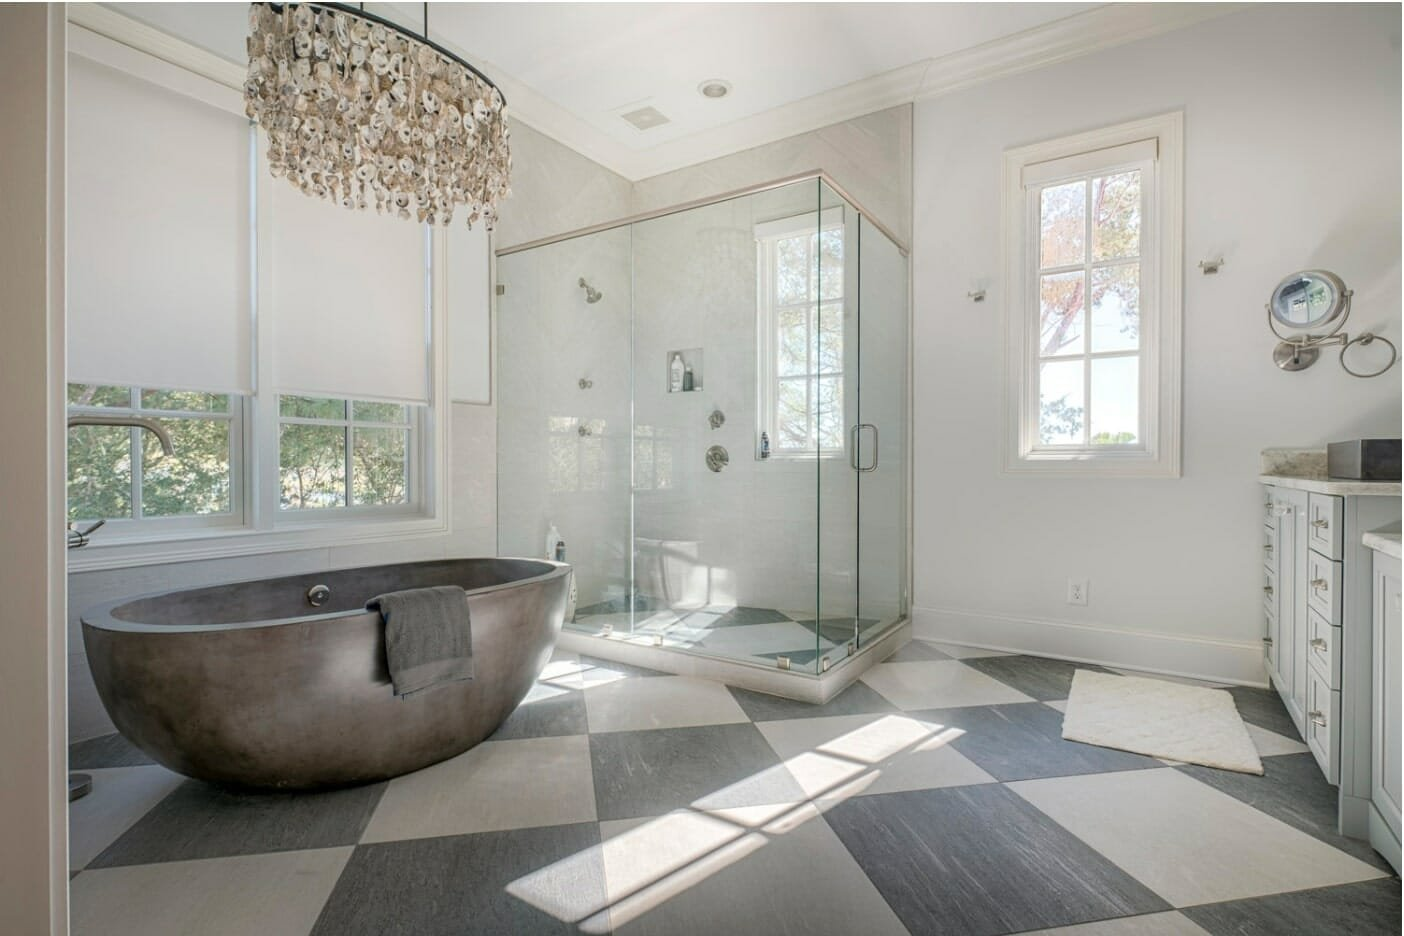 Contemporary bathroom by one of the best savannah interior designers